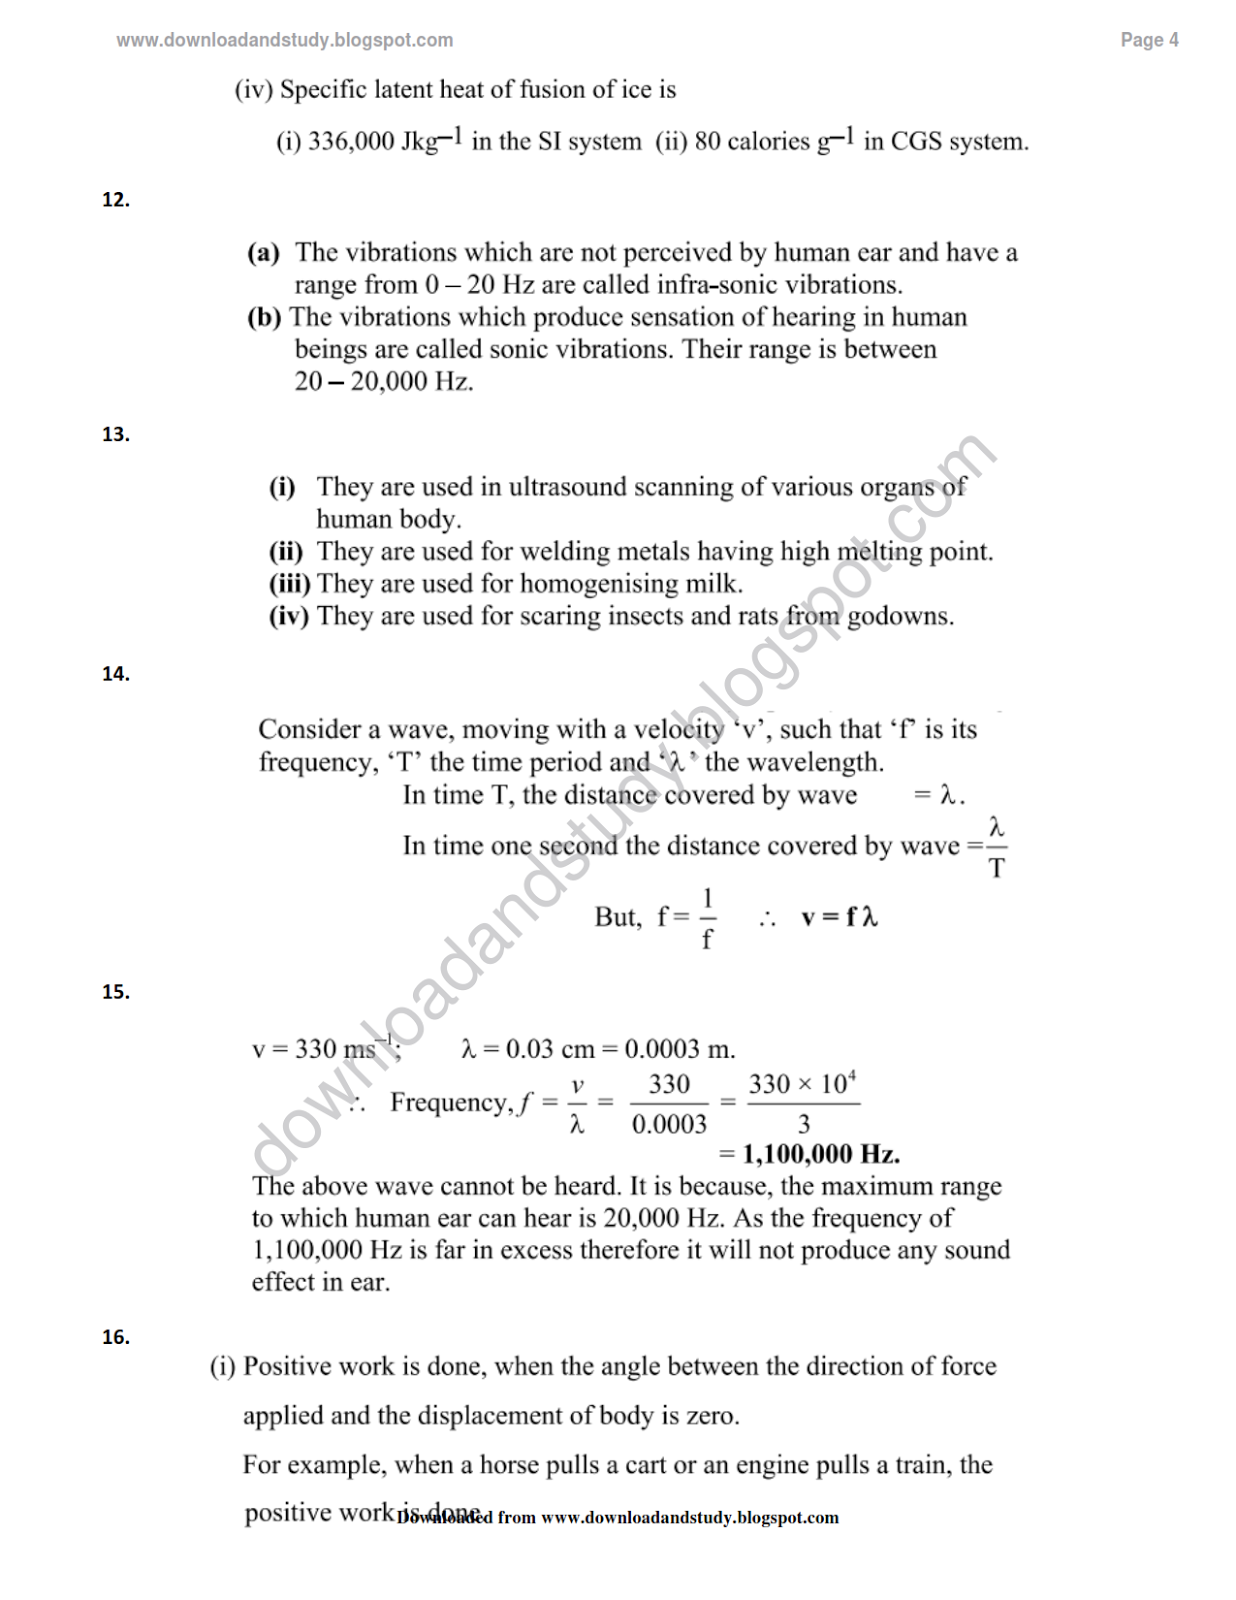 Download Amp Study Solution To Icse Physics Test Worksheet